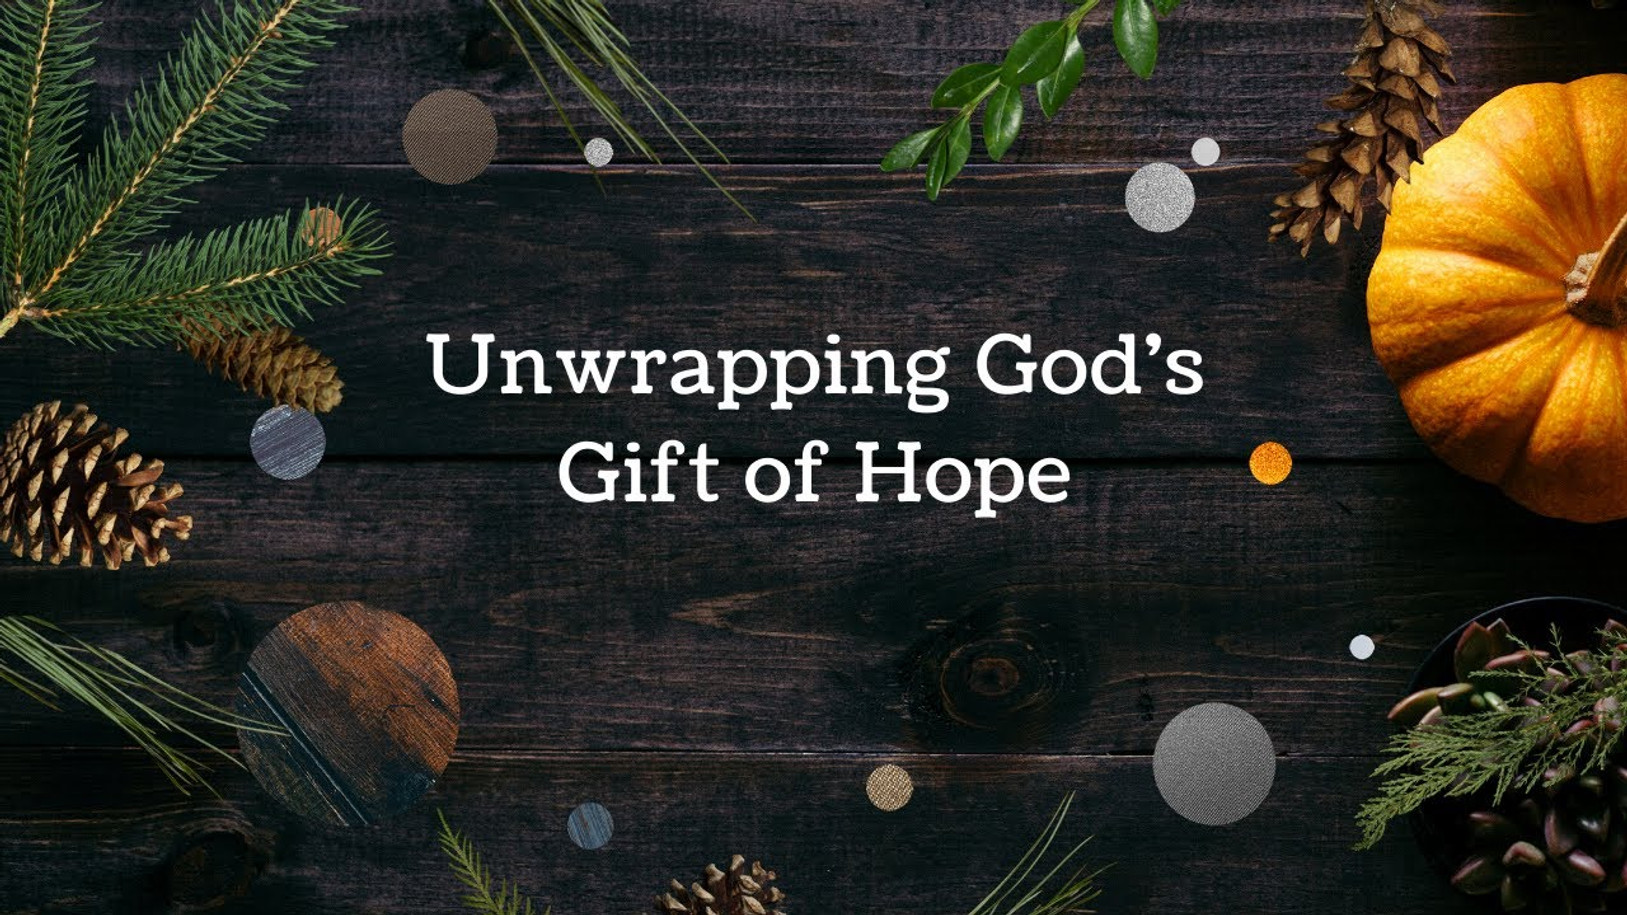 Unwrapping God's Gift of Hope